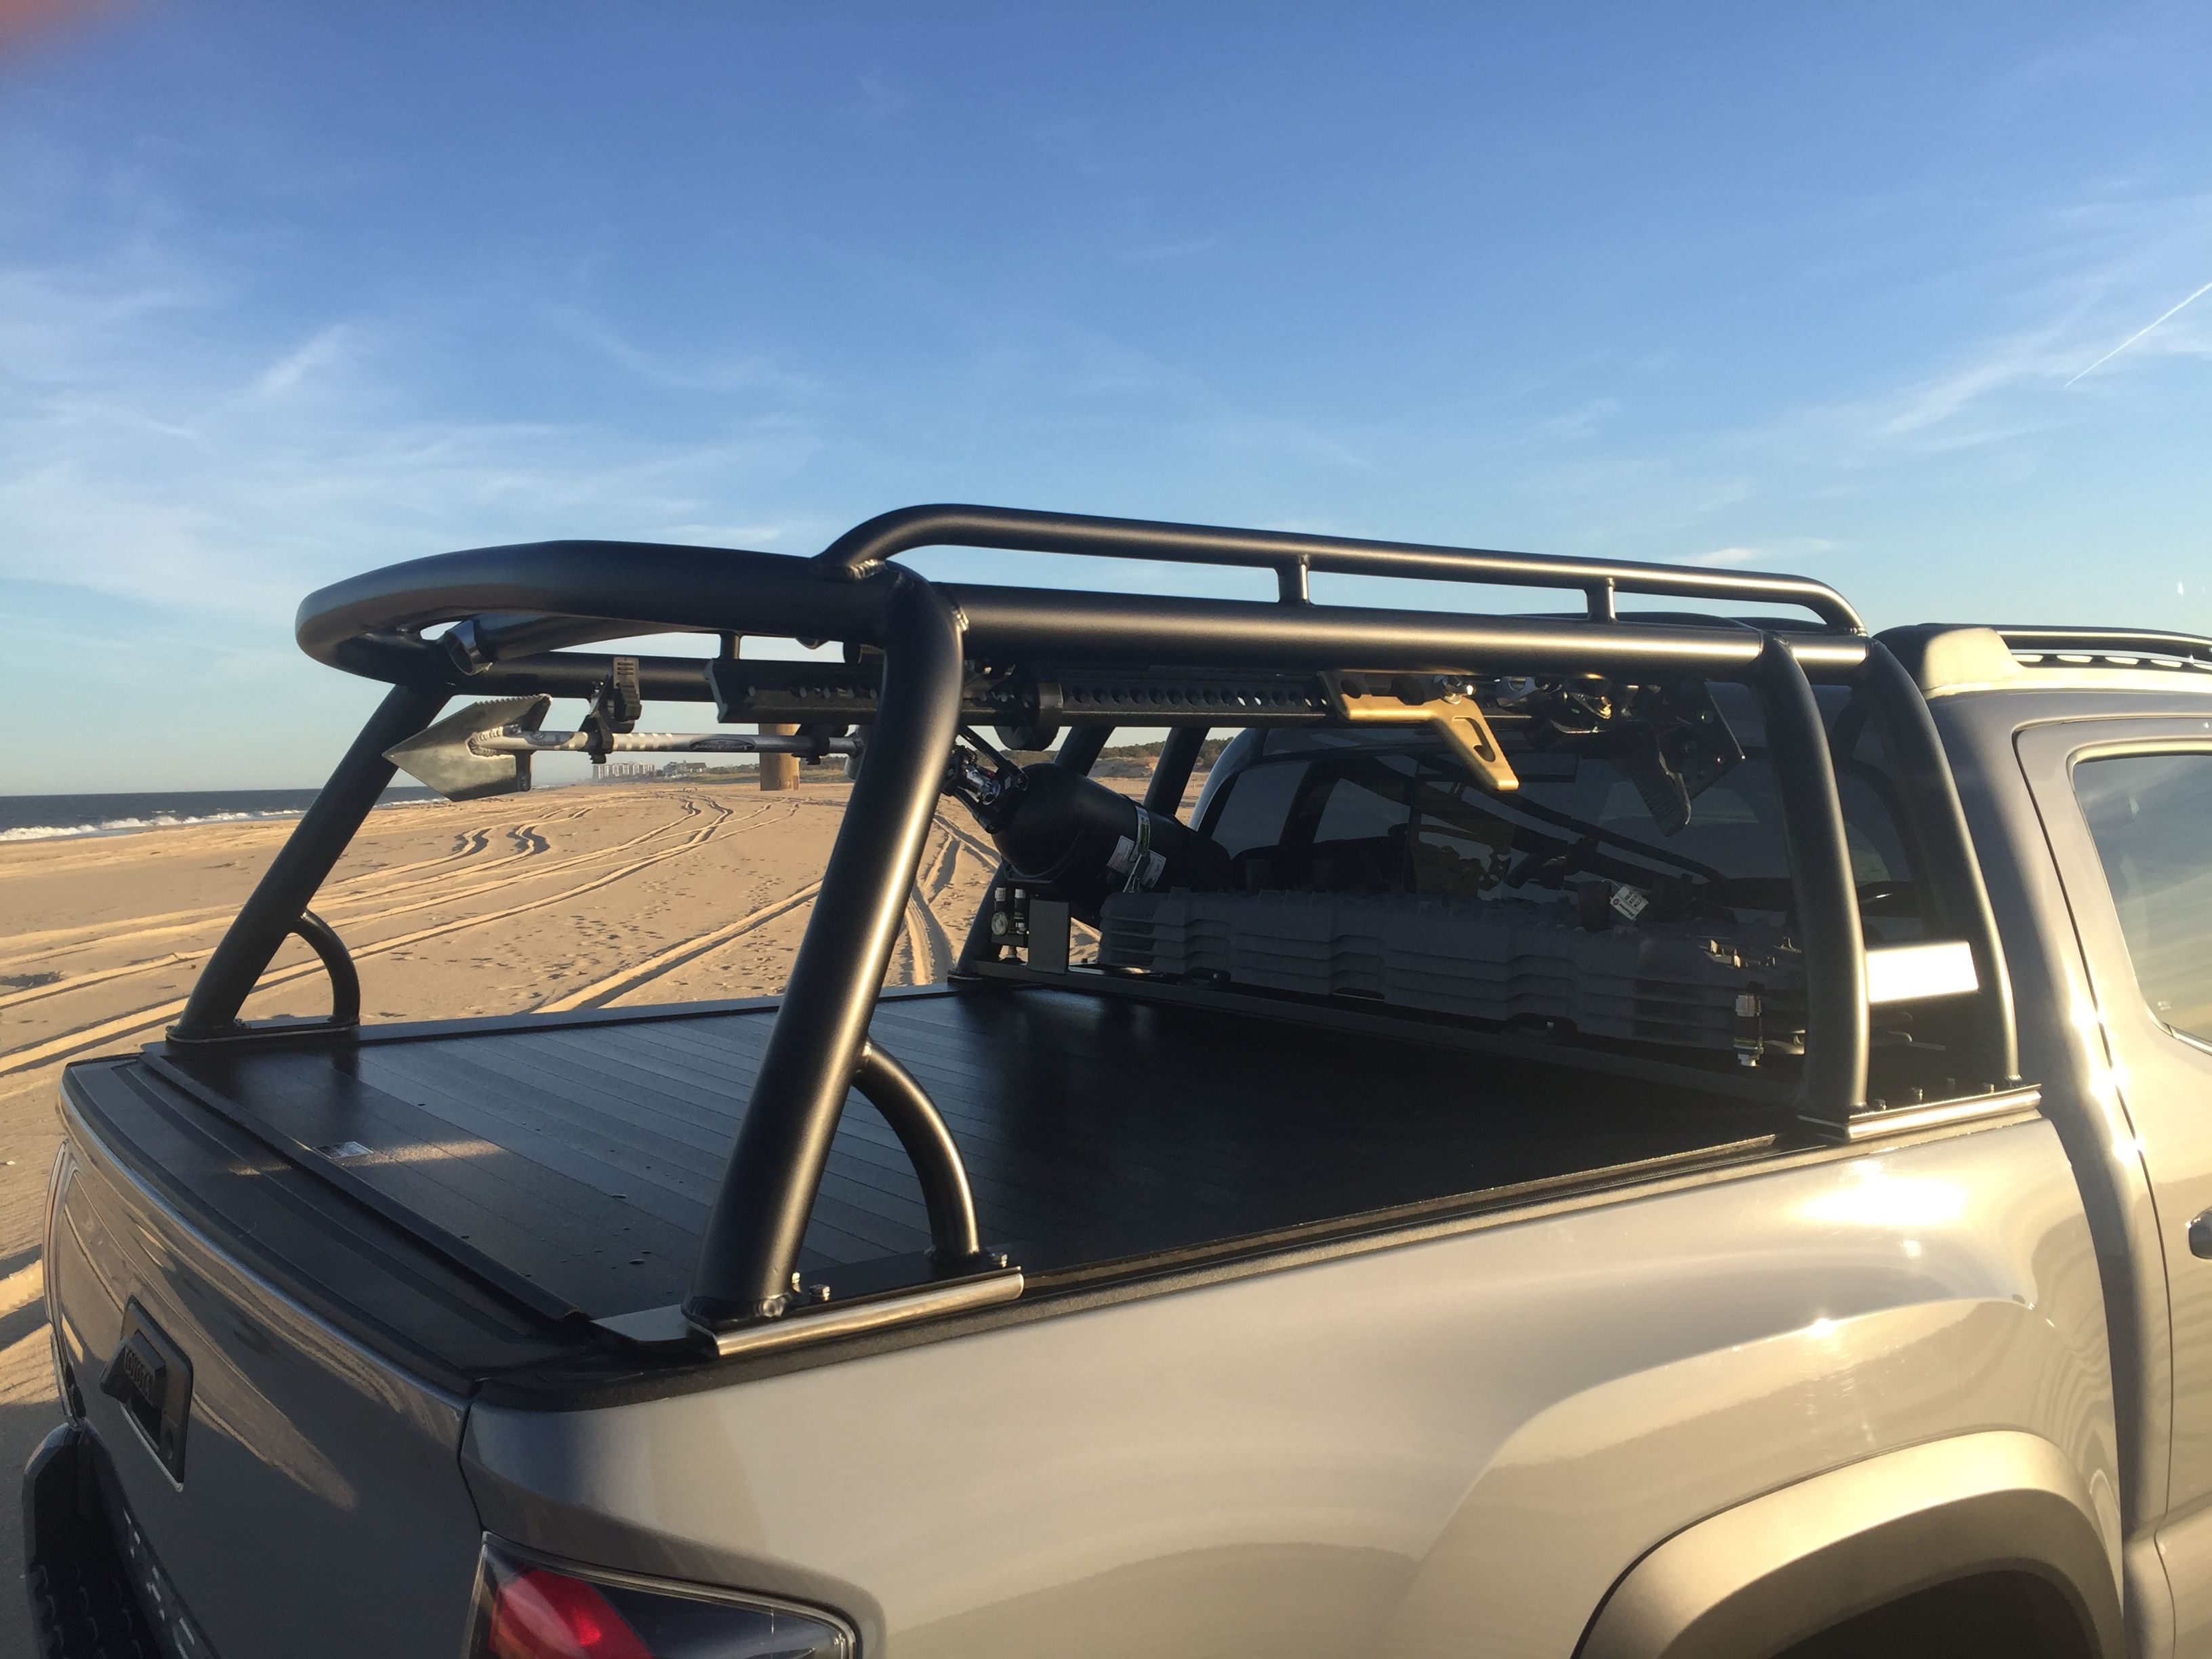 Pin On Tacoma Bed Rack